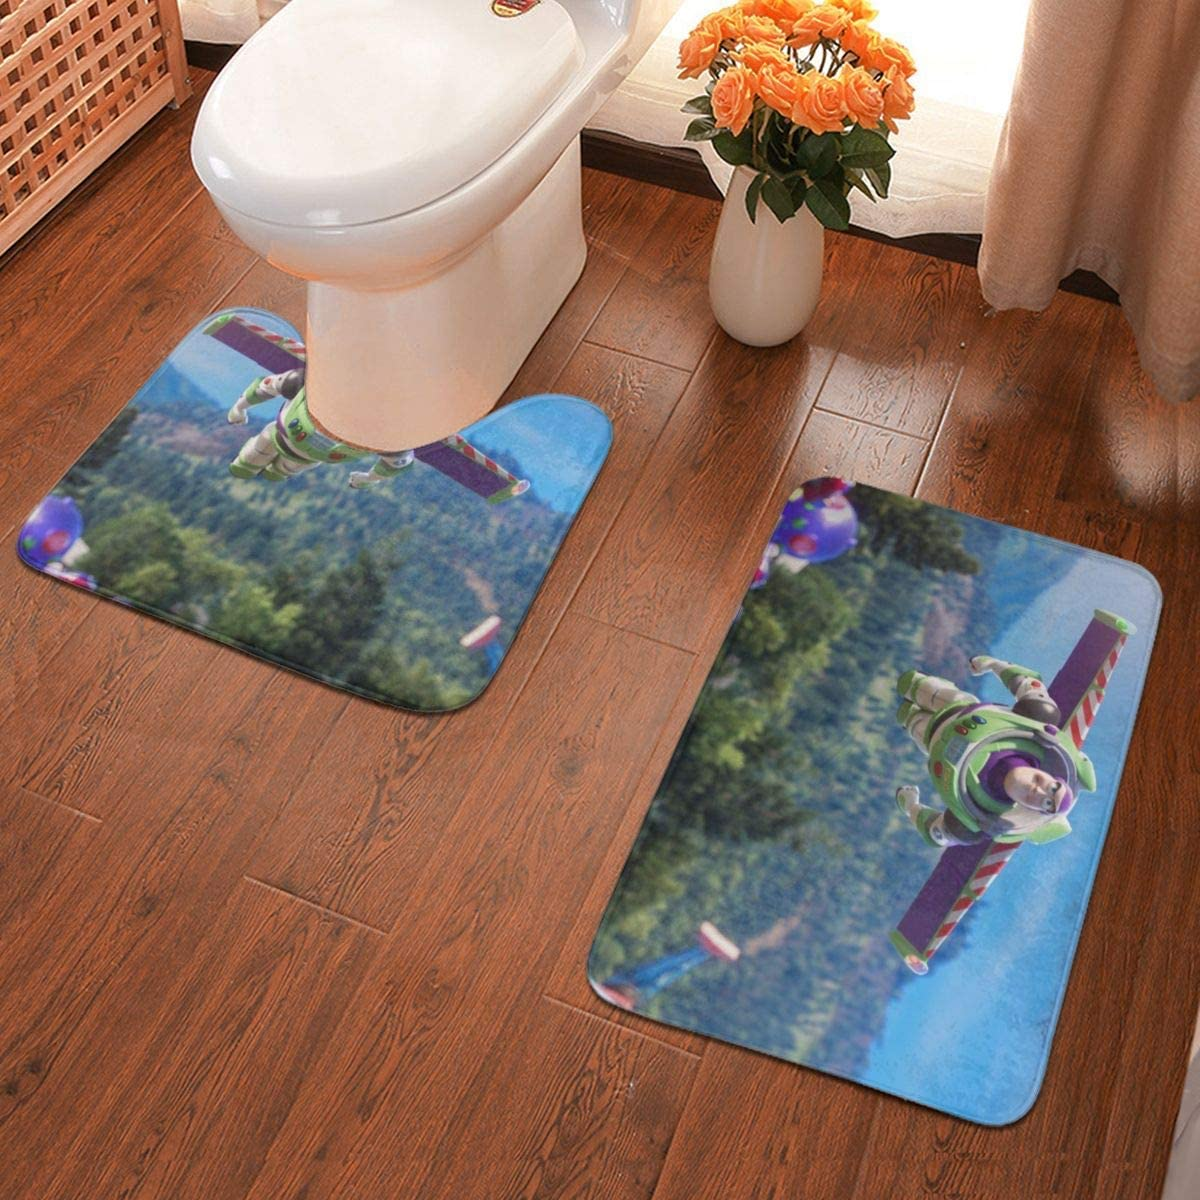 Boweike Cartoon Toy Story Buzz Lightyear Bathroom Antiskid Pad Non-Slip Bath Carpet Floor Mat Rug 2 Sets -Floor Mat+U-Shaped Pad, Toilet Washable Blanket Mats for Bathroom Home Shower